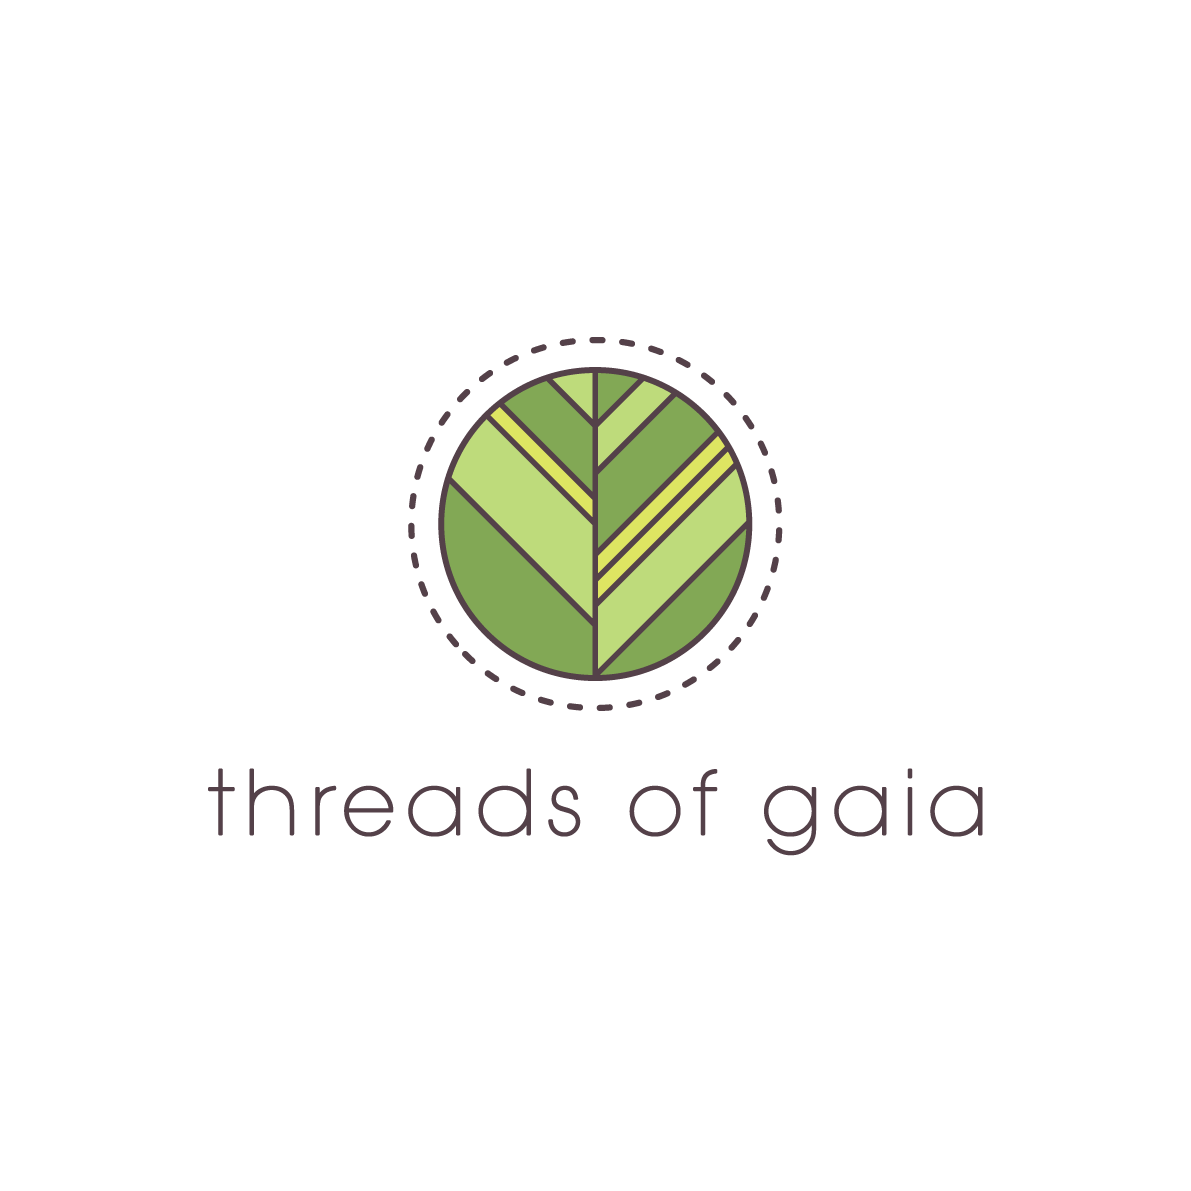 Threads of Gaia